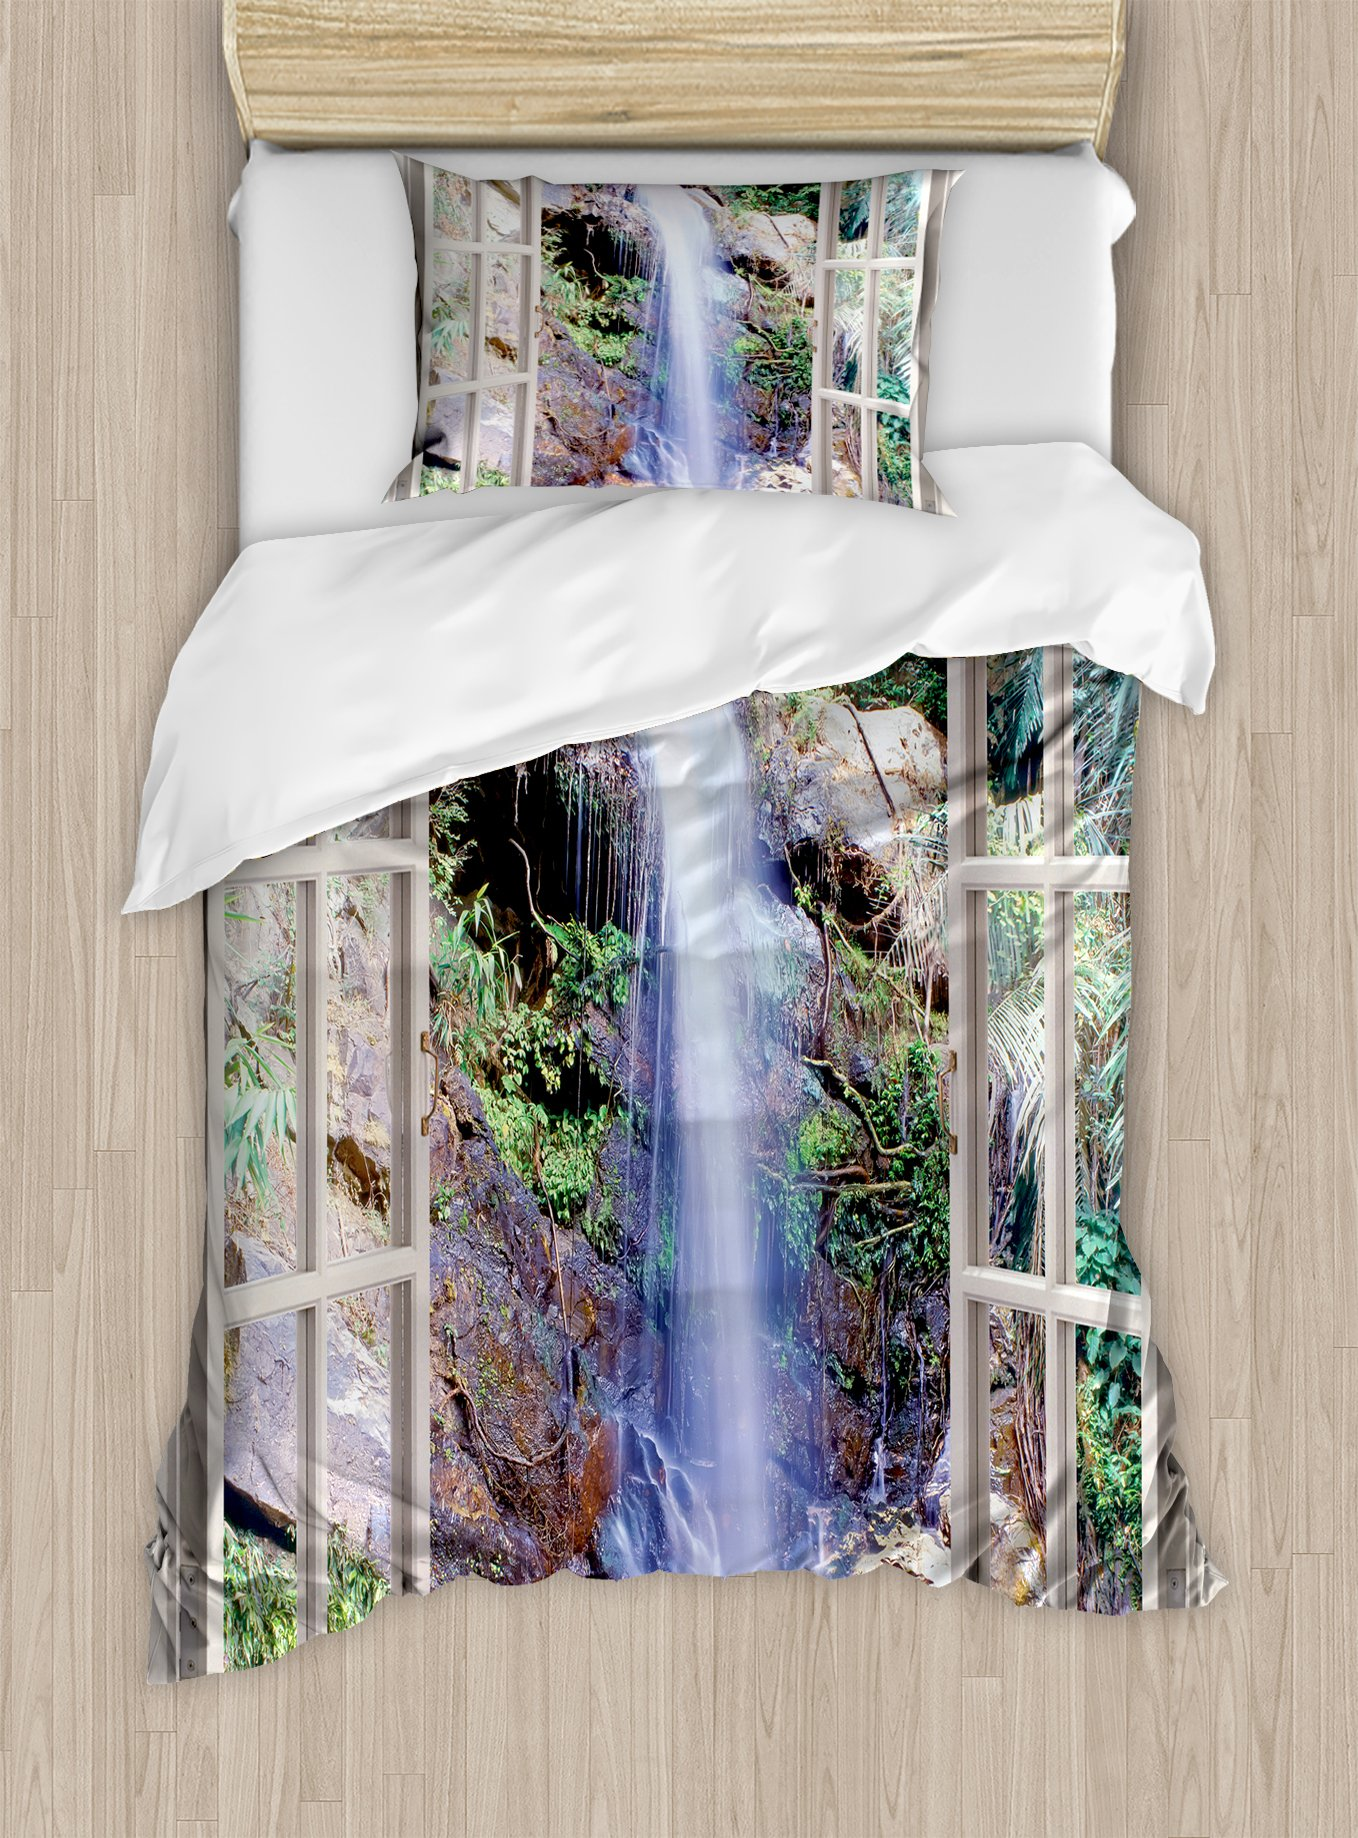 Ambesonne Waterfall Duvet Cover Set Twin Size, Open Window Sees A Small Water Cascade Flowing Down Hills Recreational Picture, Decorative 2 Piece Bedding Set with 1 Pillow Sham, Brown Green